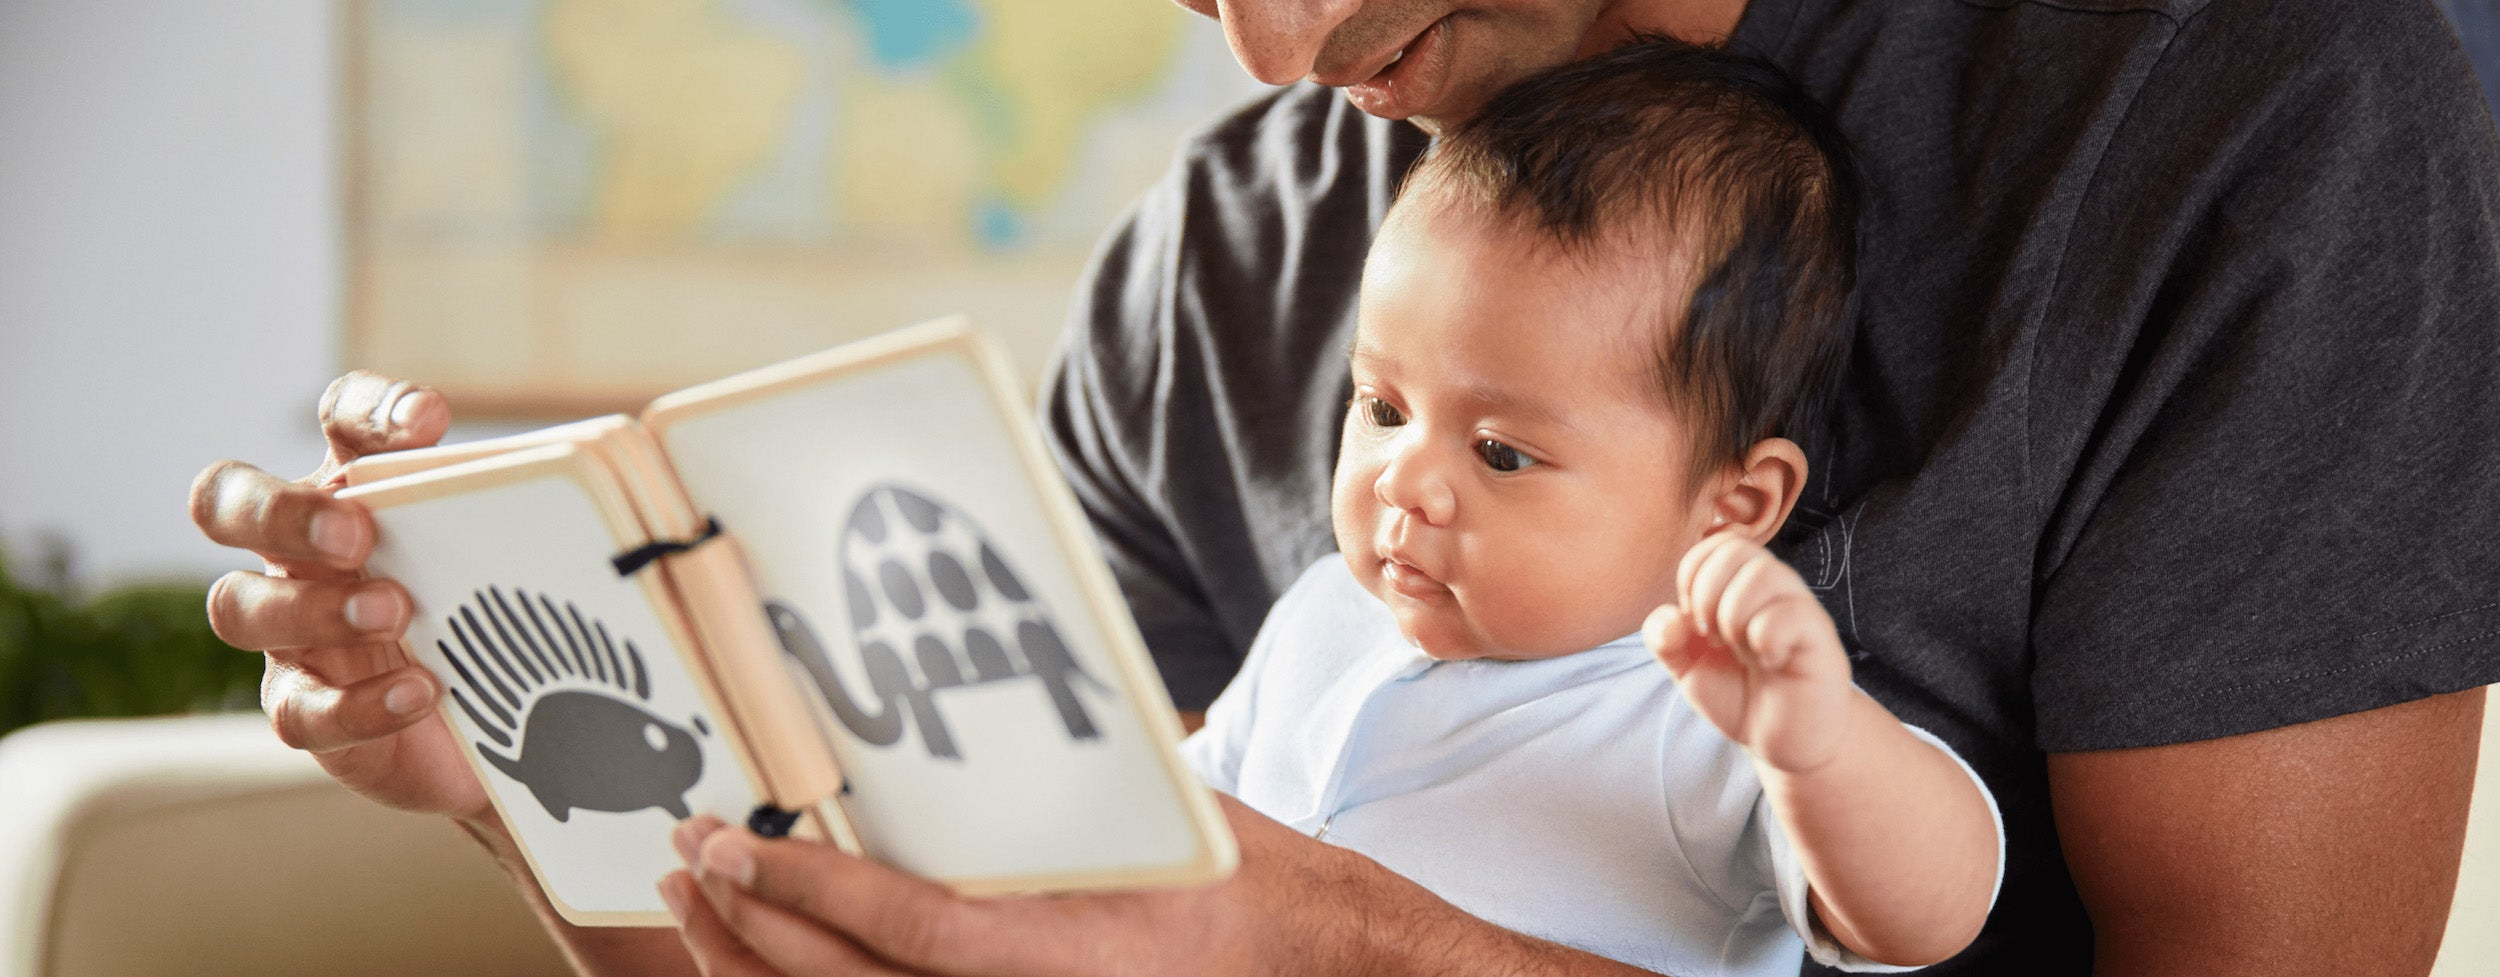 parent showing baby a book with black and white patterns